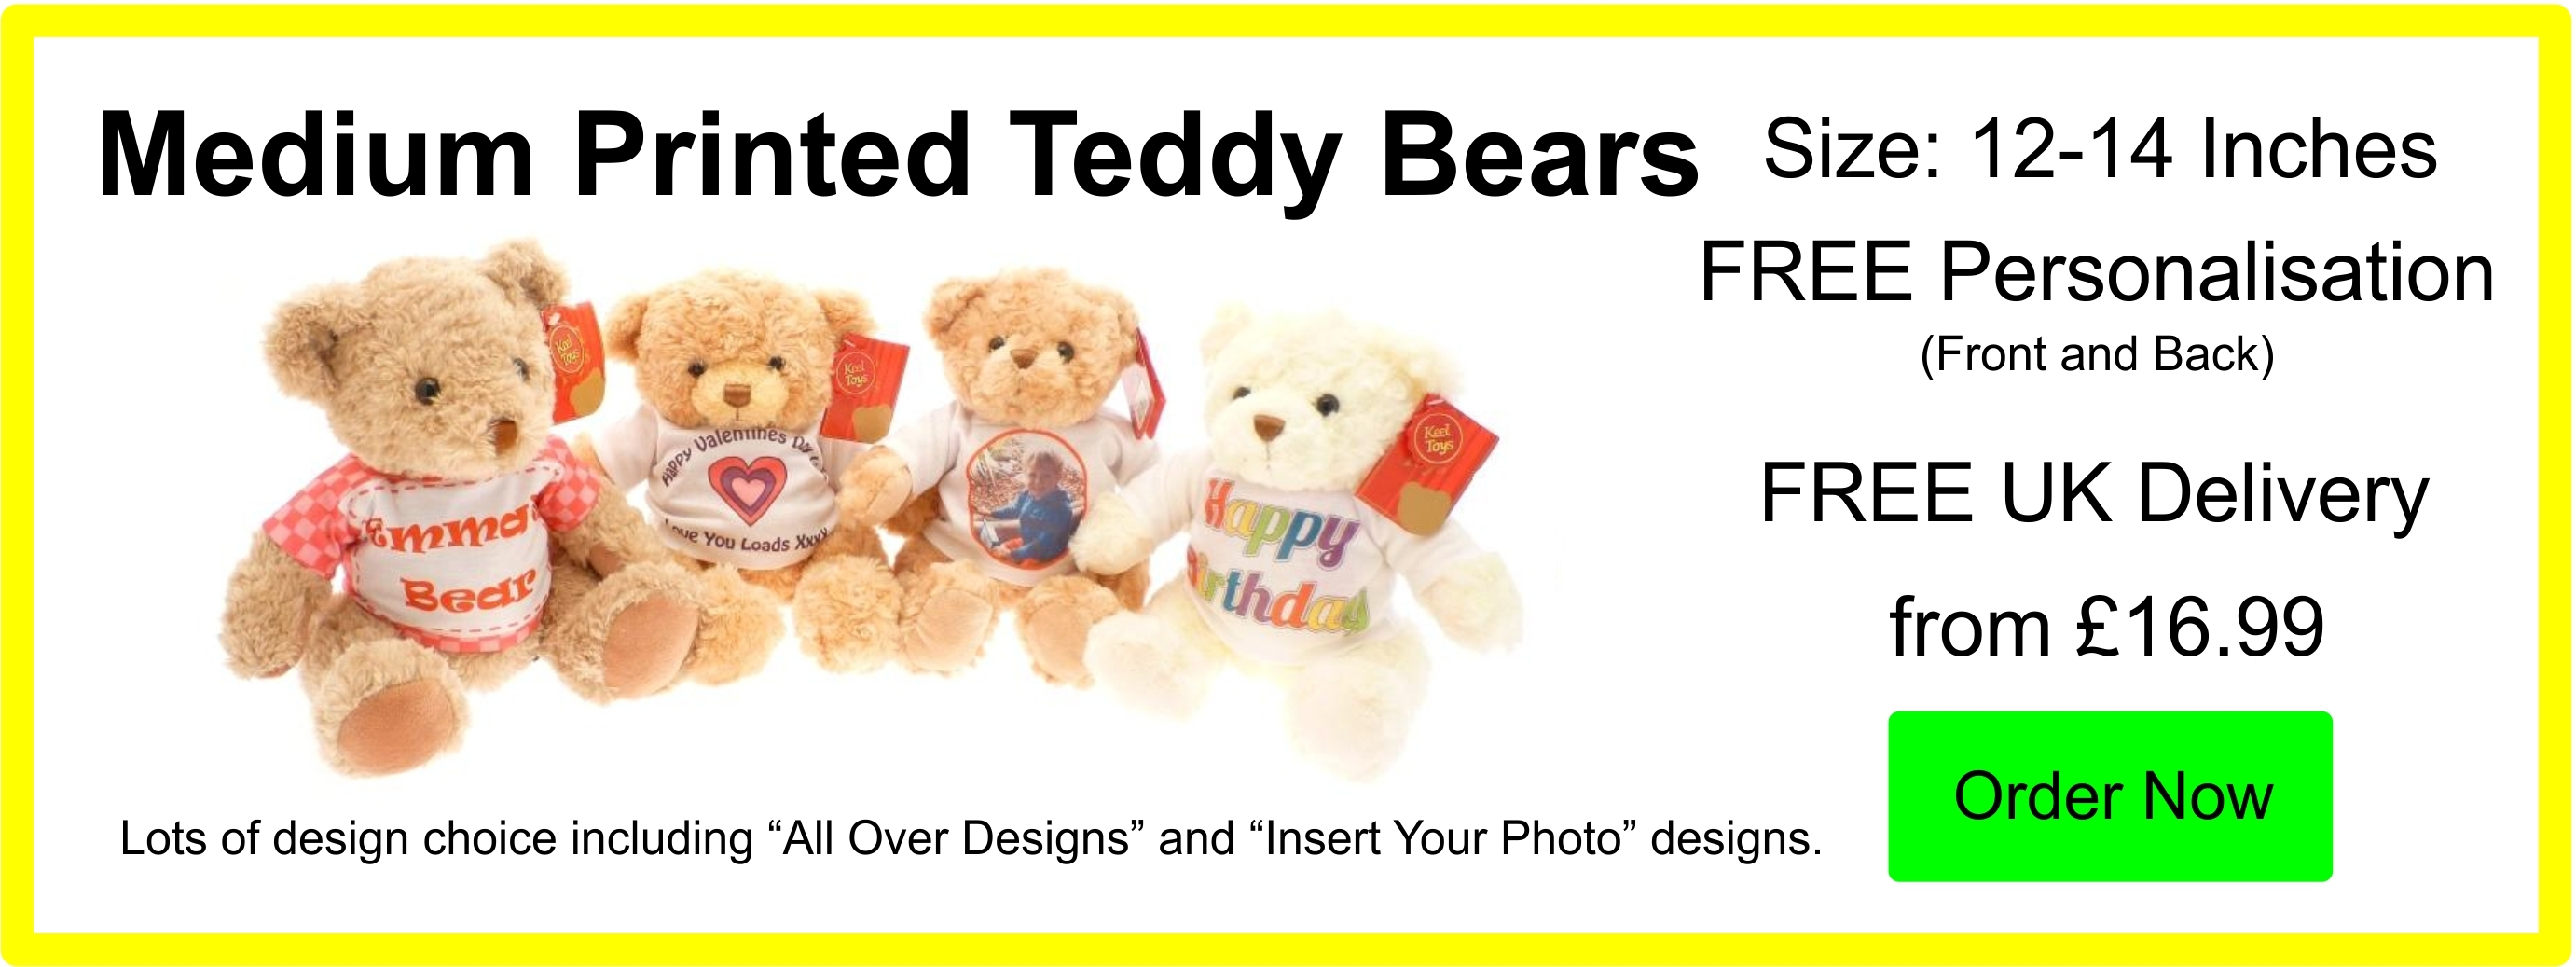 Personalised Medium 10 Inch Printed Teddy Bears from £16.99